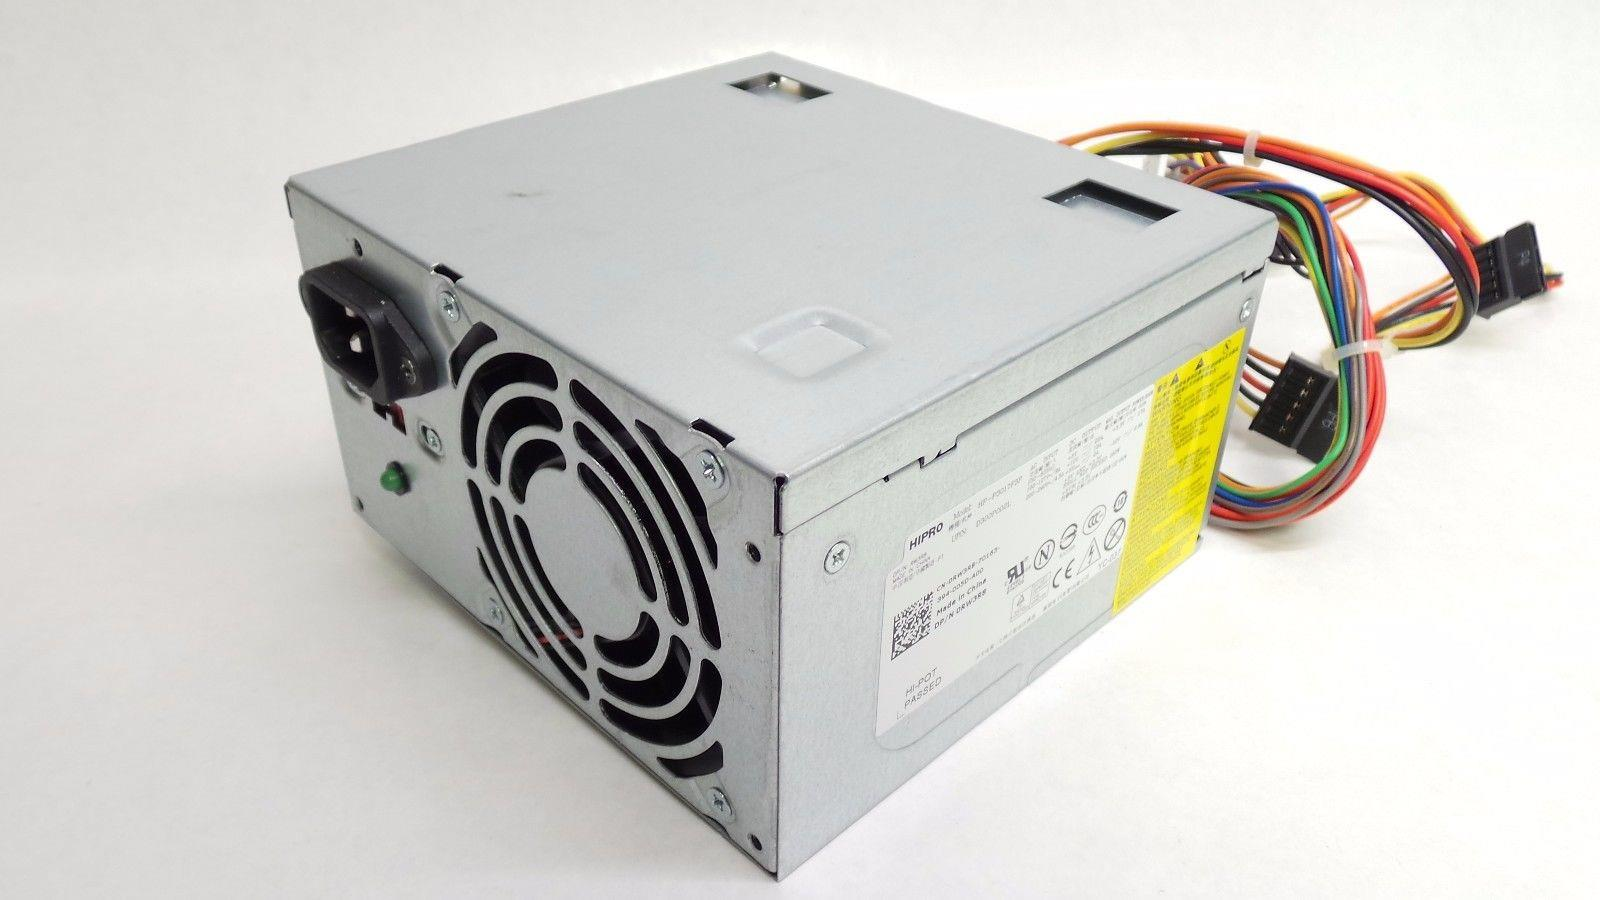 DELL Vostro 230 MT 300W Power Supply PSU RW3R8